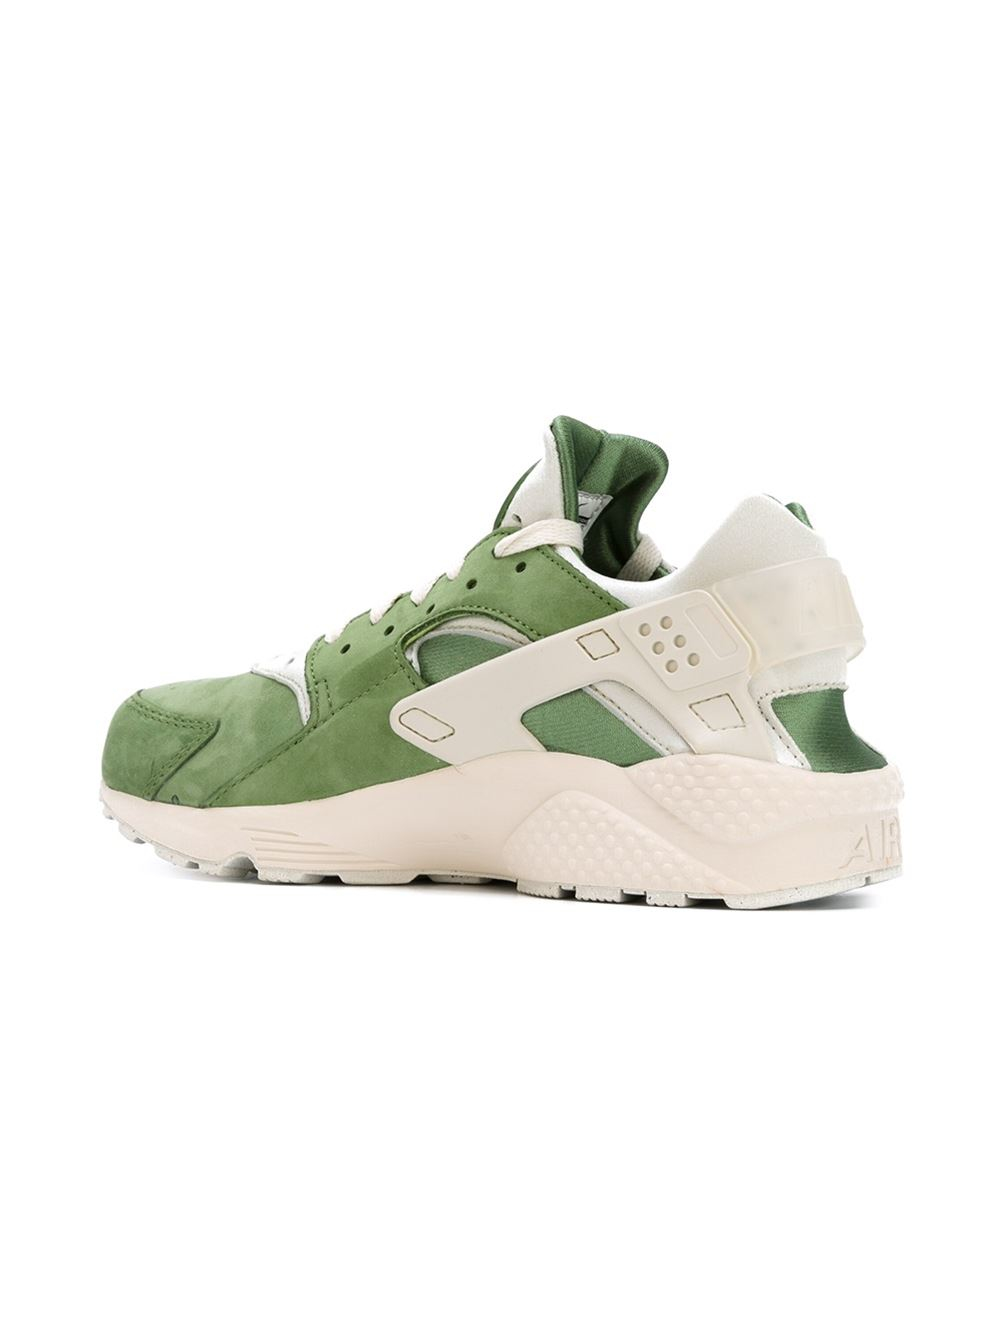 nike 39 air huarache 39 sneakers in beige for men green lyst. Black Bedroom Furniture Sets. Home Design Ideas